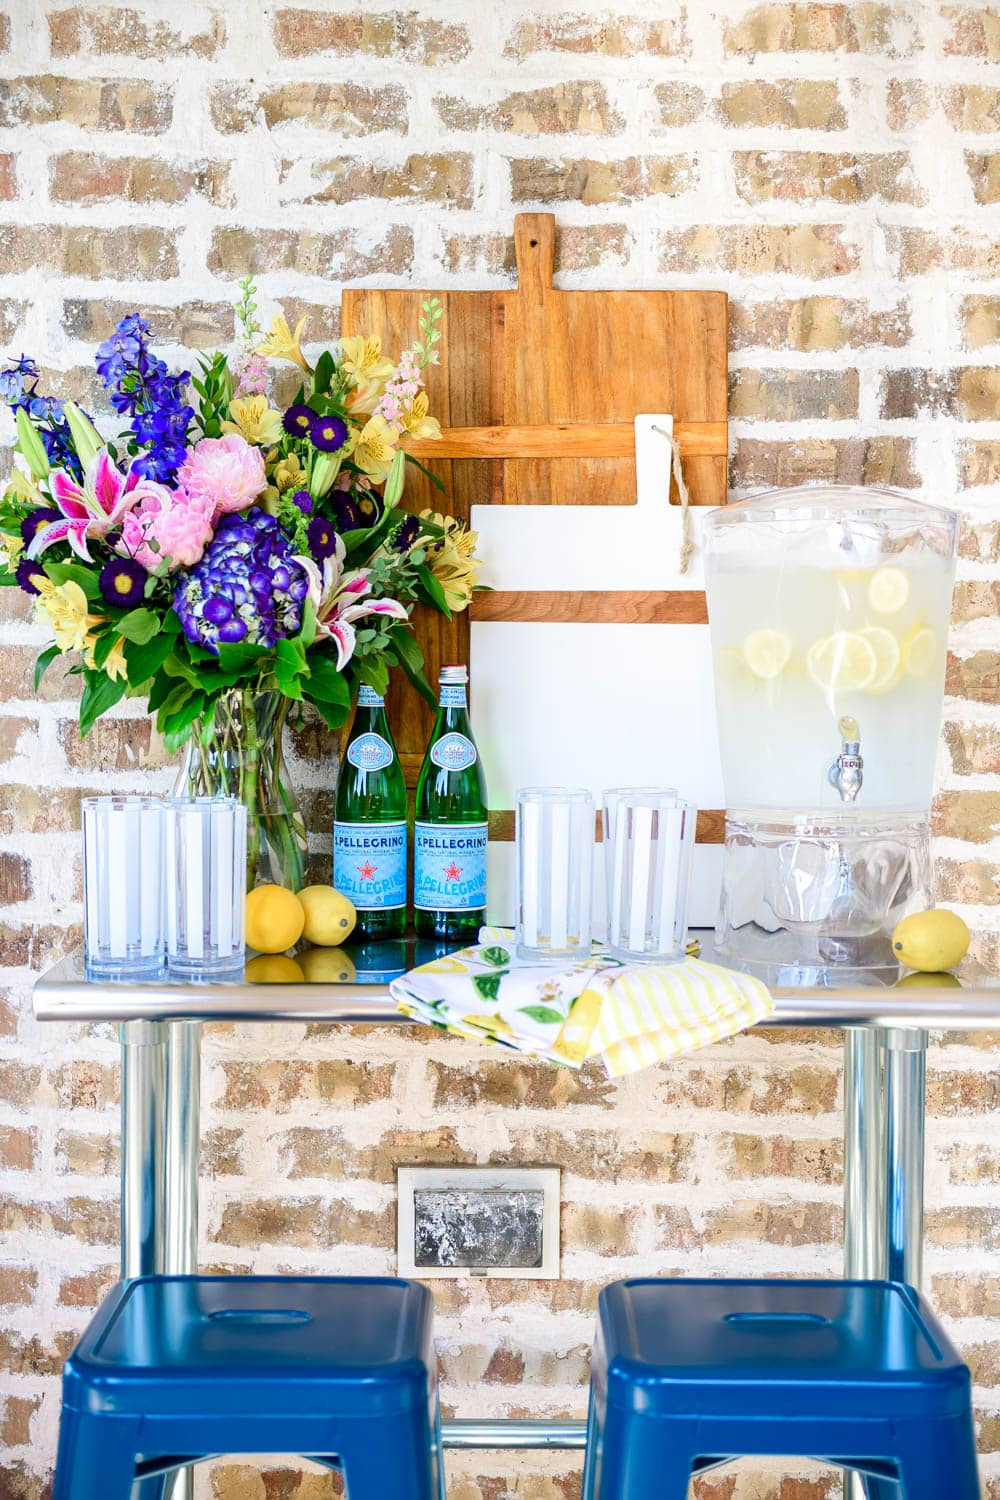 Create a little drink station on an outdoor table for guests. #ABlissfulNest #WalmartHome #ad